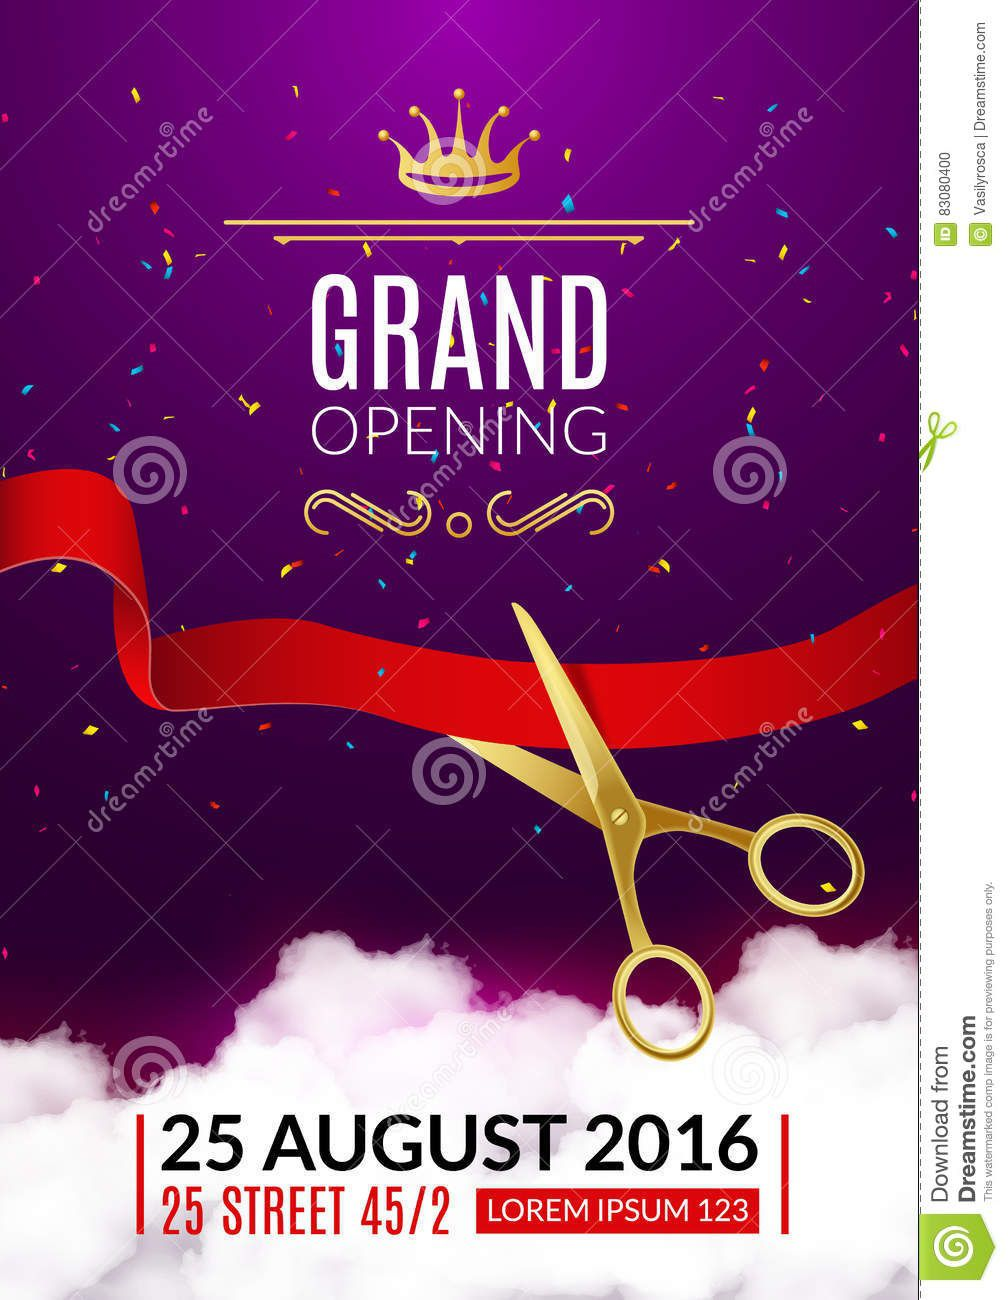 007 Exceptional Grand Opening Flyer Template Free Picture  RestaurantFull